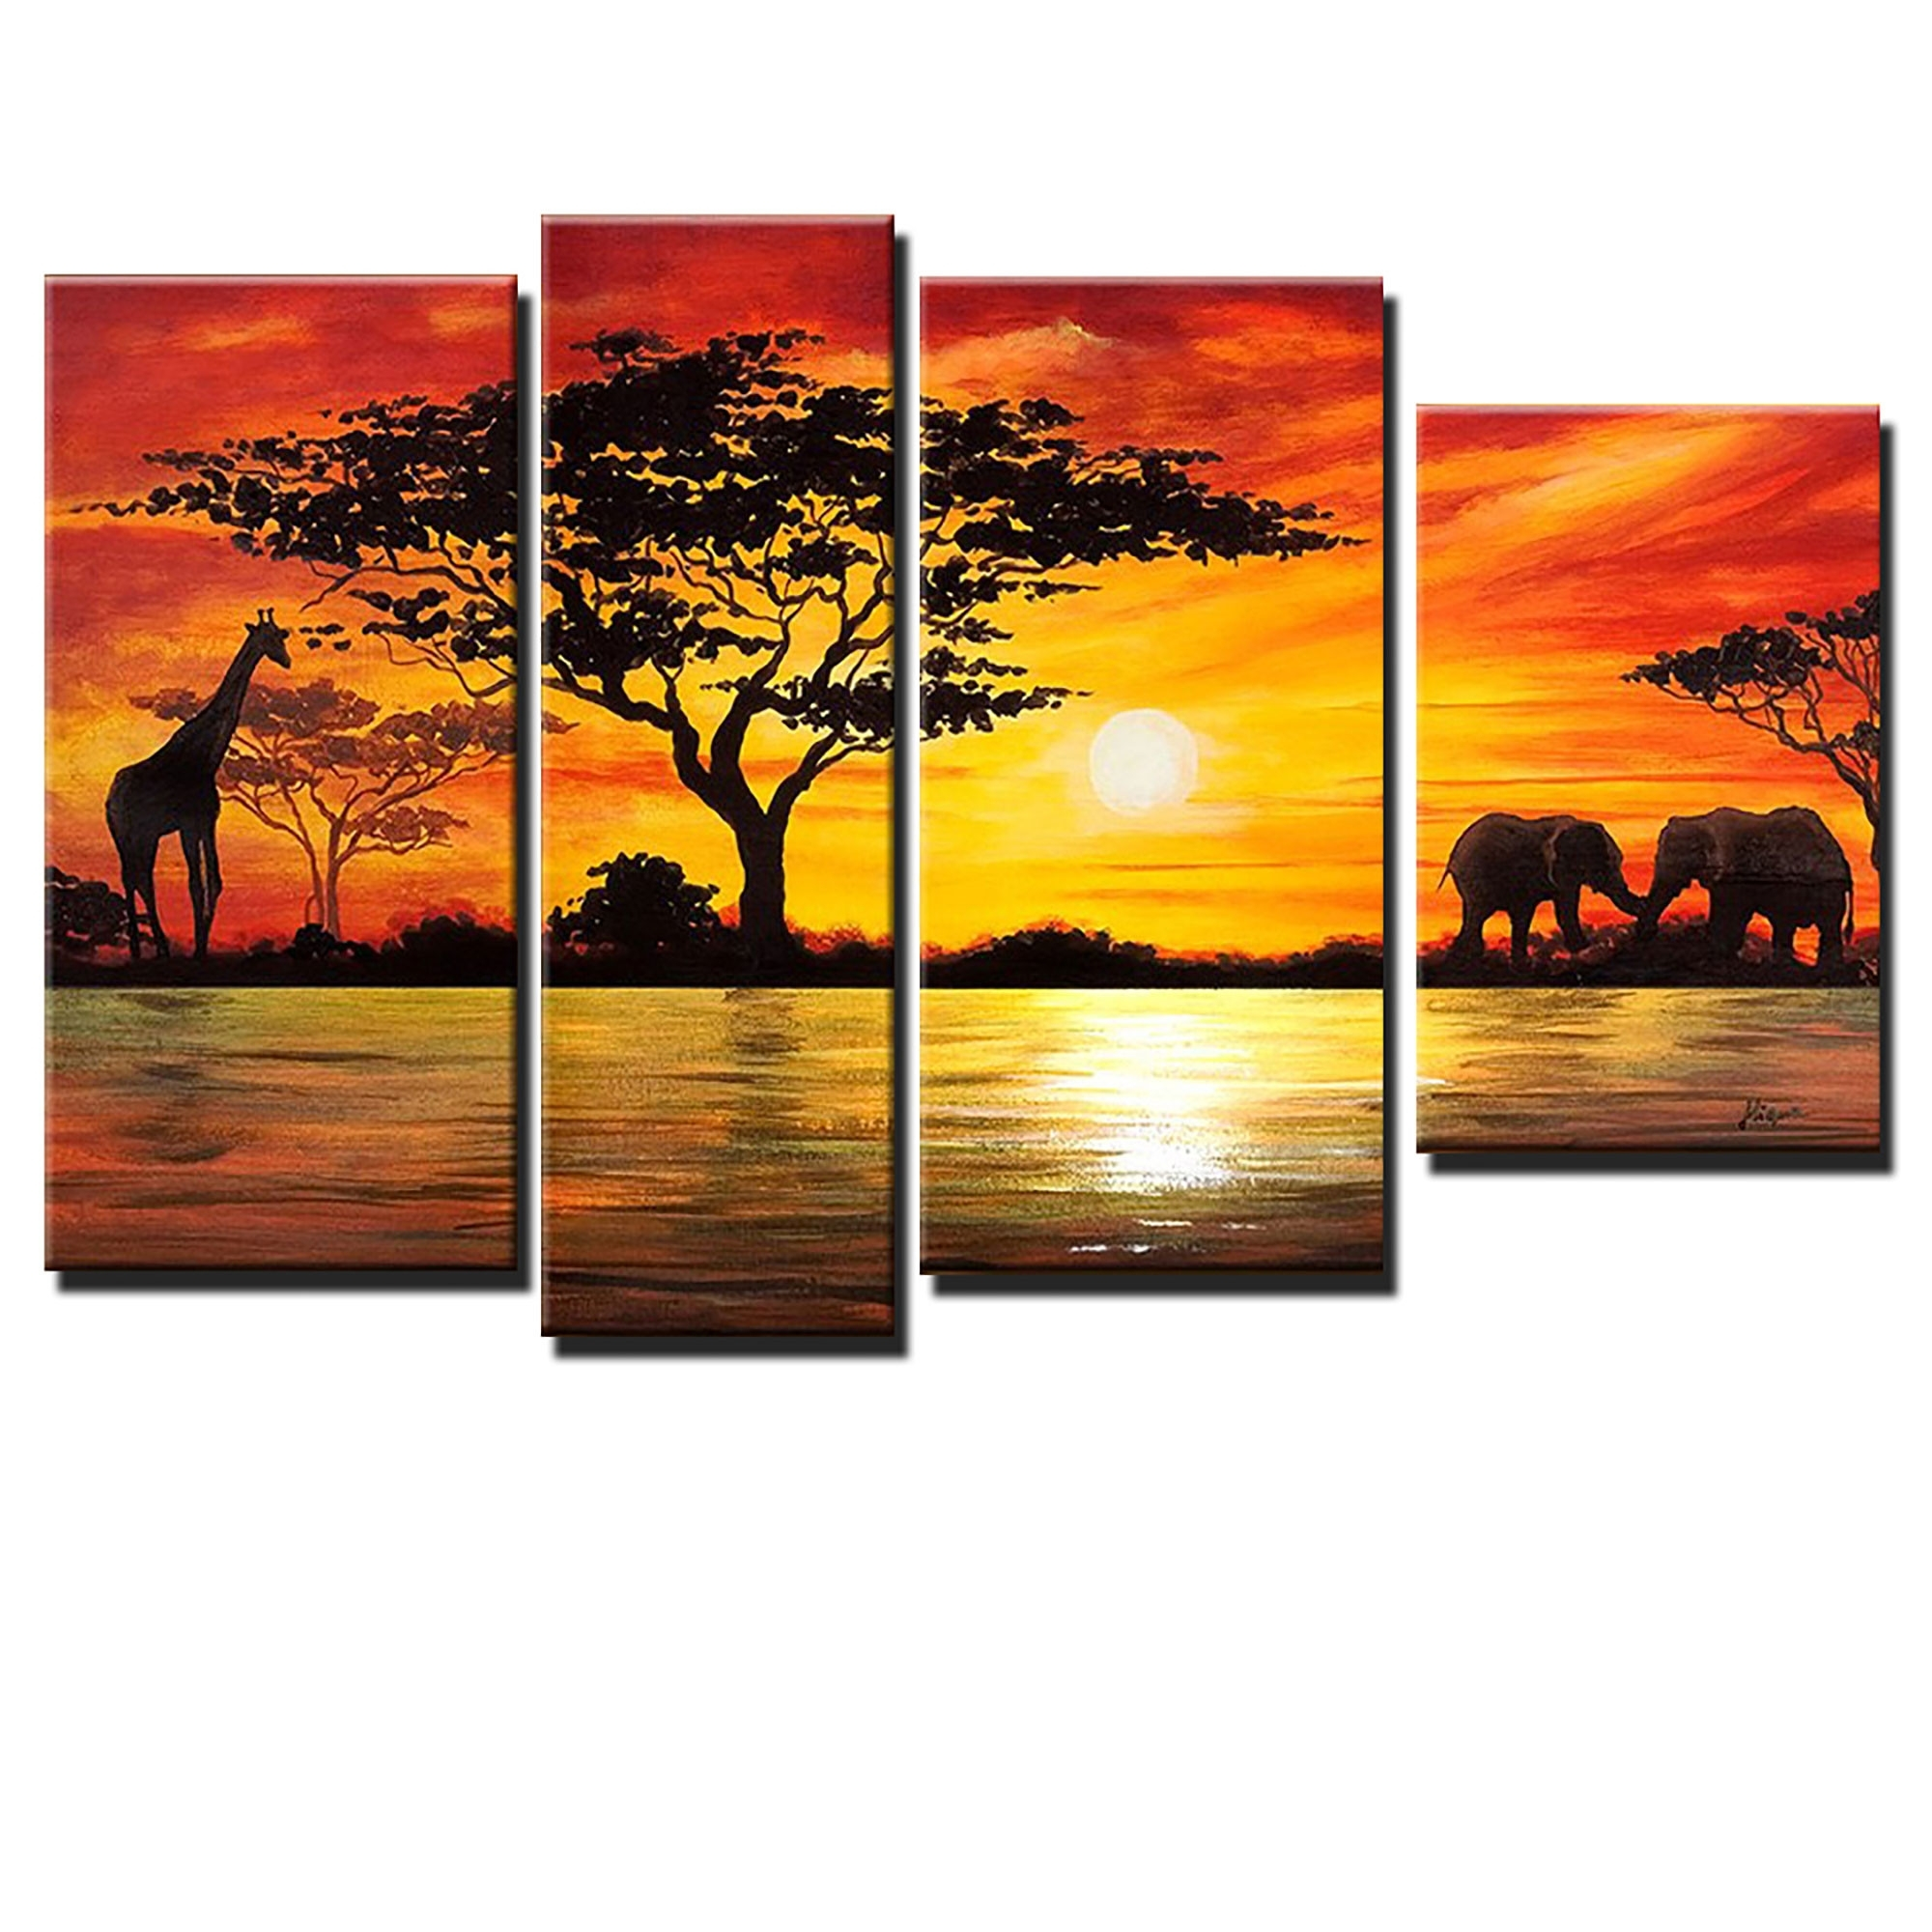 Beauty Of Africa Landscape Canvas Wall Art Oil Painting | Lovely With Regard To Recent Landscape Canvas Wall Art (View 6 of 15)